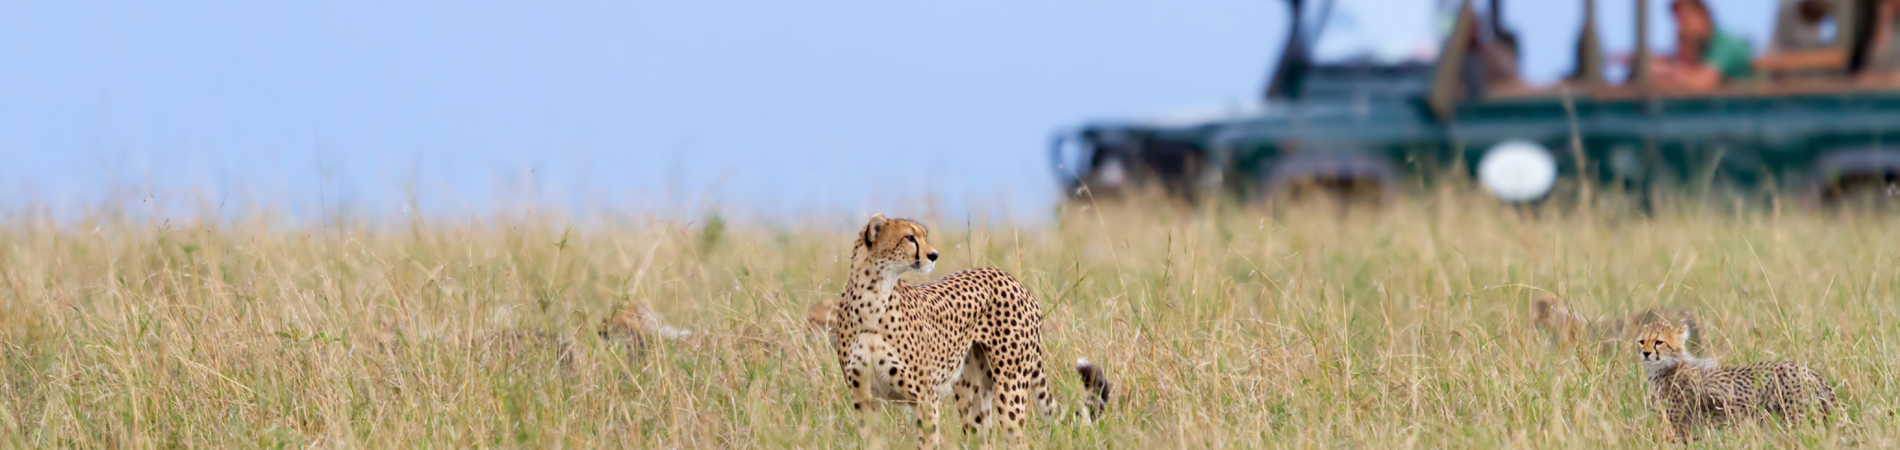 shutterstock tz header cheetah safari grass